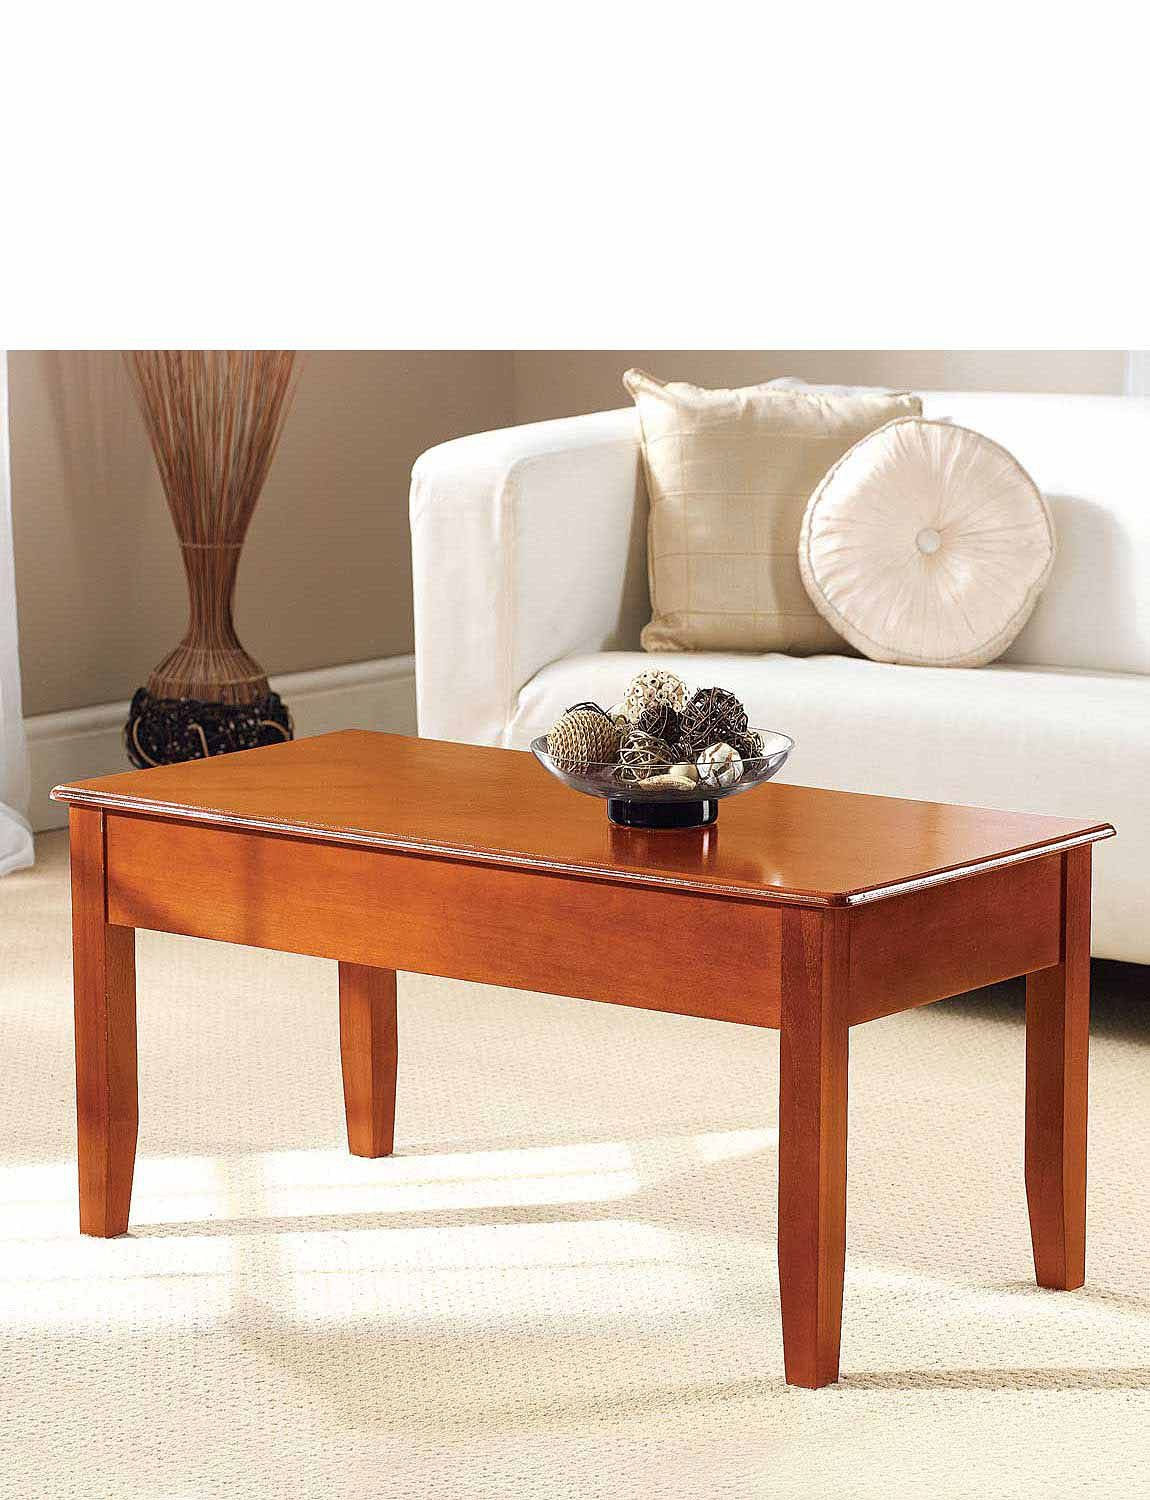 2 in 1 dining coffee table with hidden storage chums. Black Bedroom Furniture Sets. Home Design Ideas